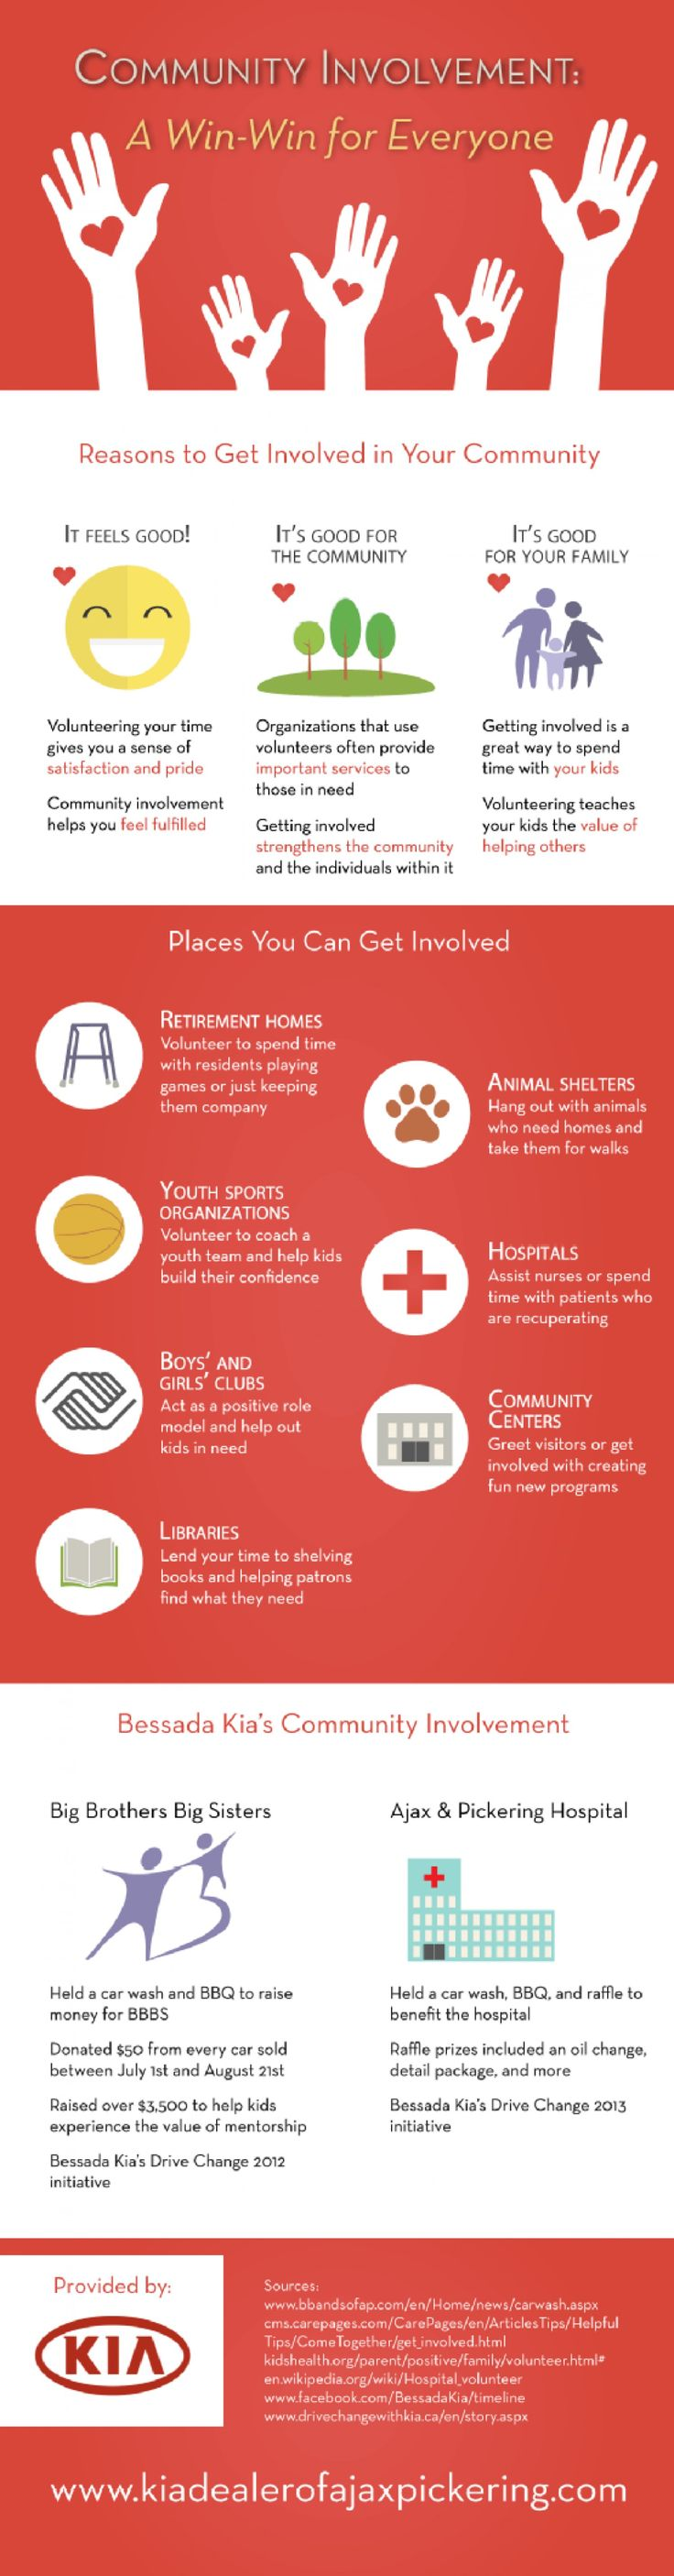 Community Involvement A WinWin for Everyone Infographic